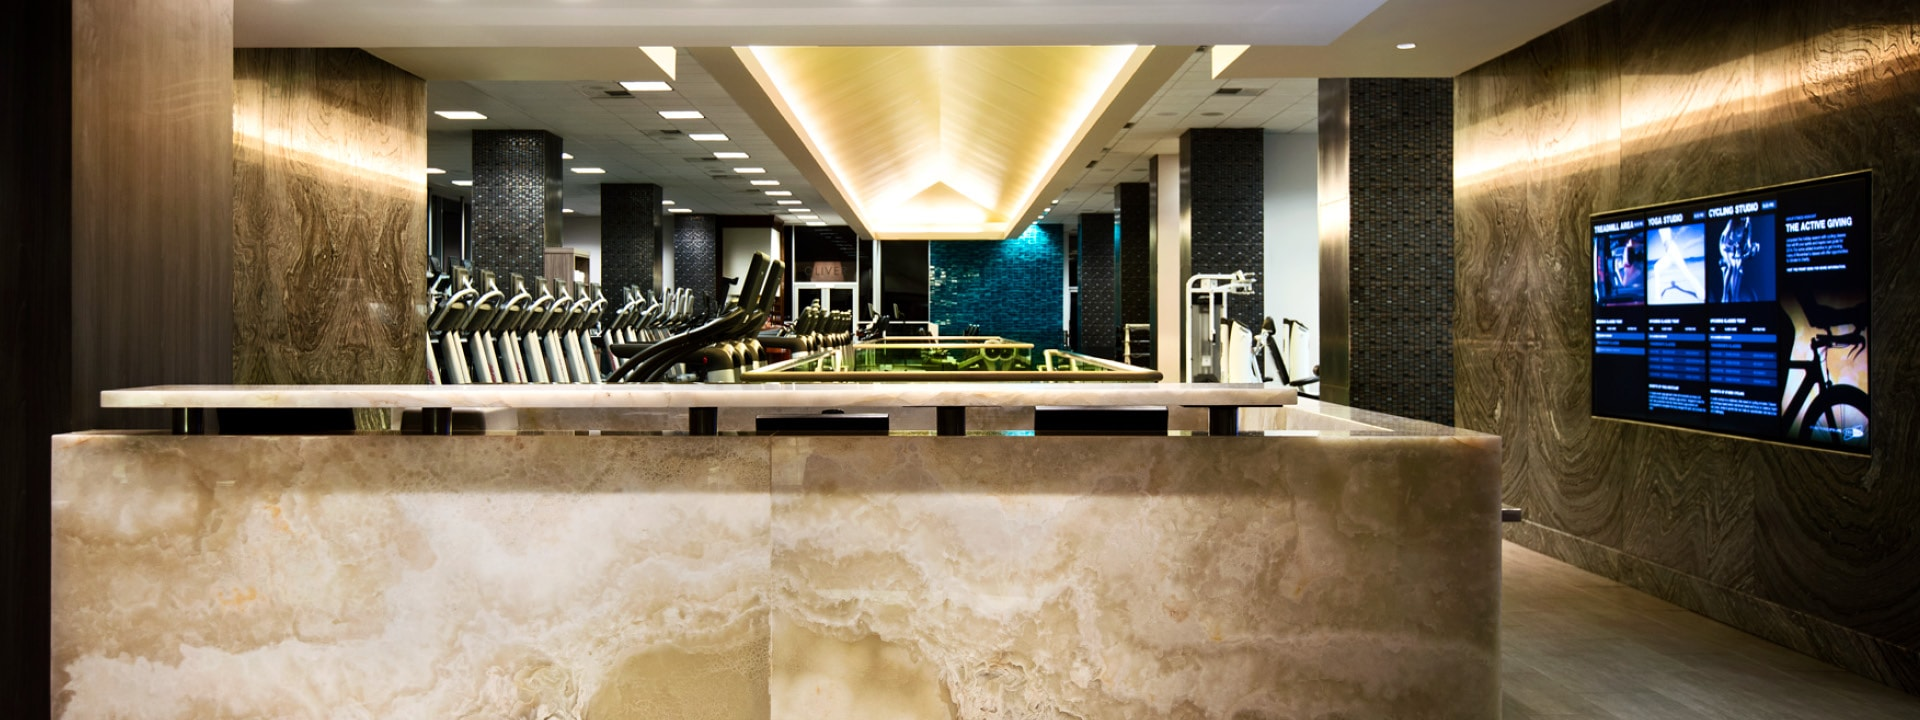 beverly hills gym: best fitness & heath club with yoga classes